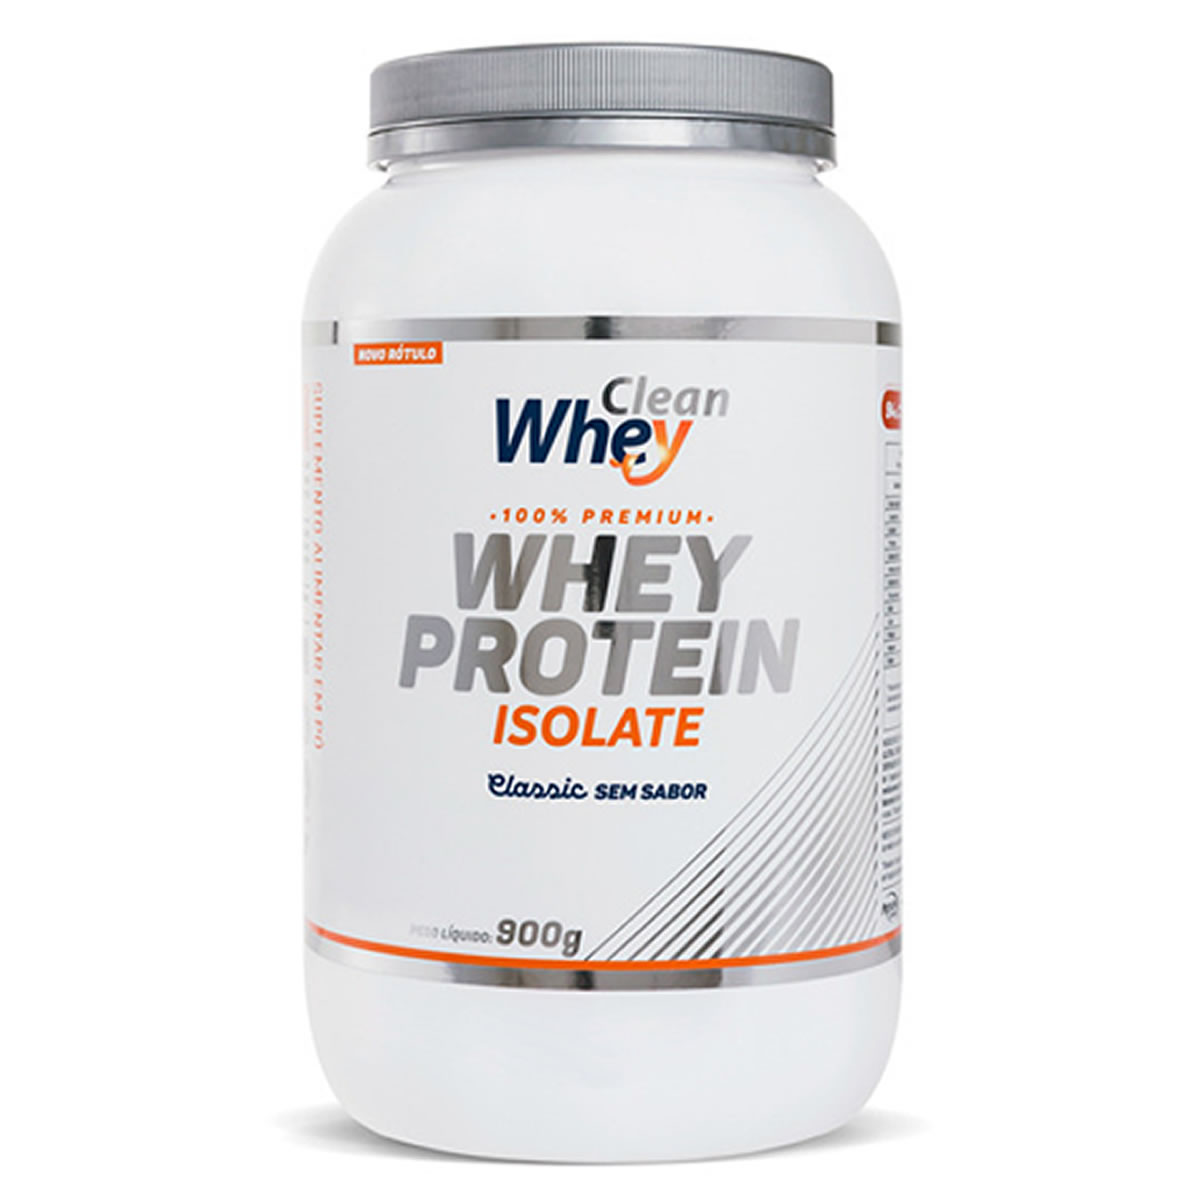 Clean Whey Isolate 900g - Clean Whey